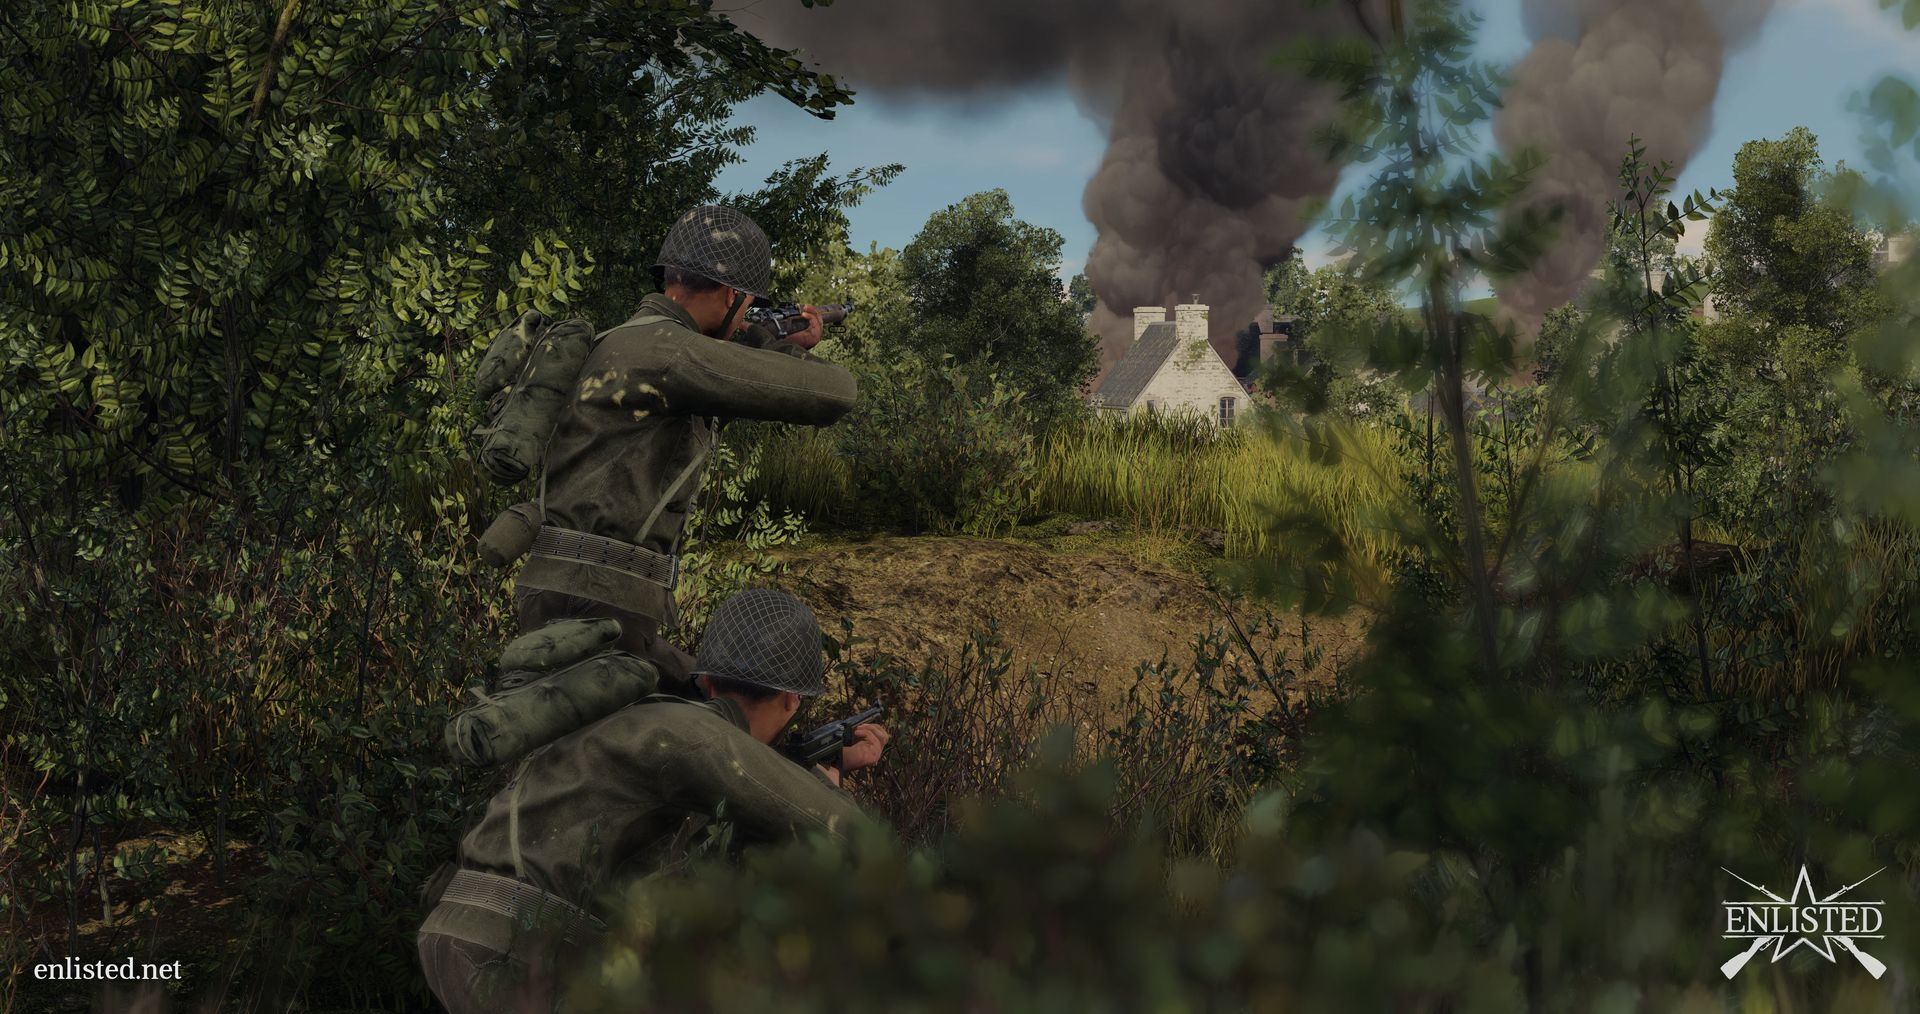 Enlisted Mmo Squad Based Shooter